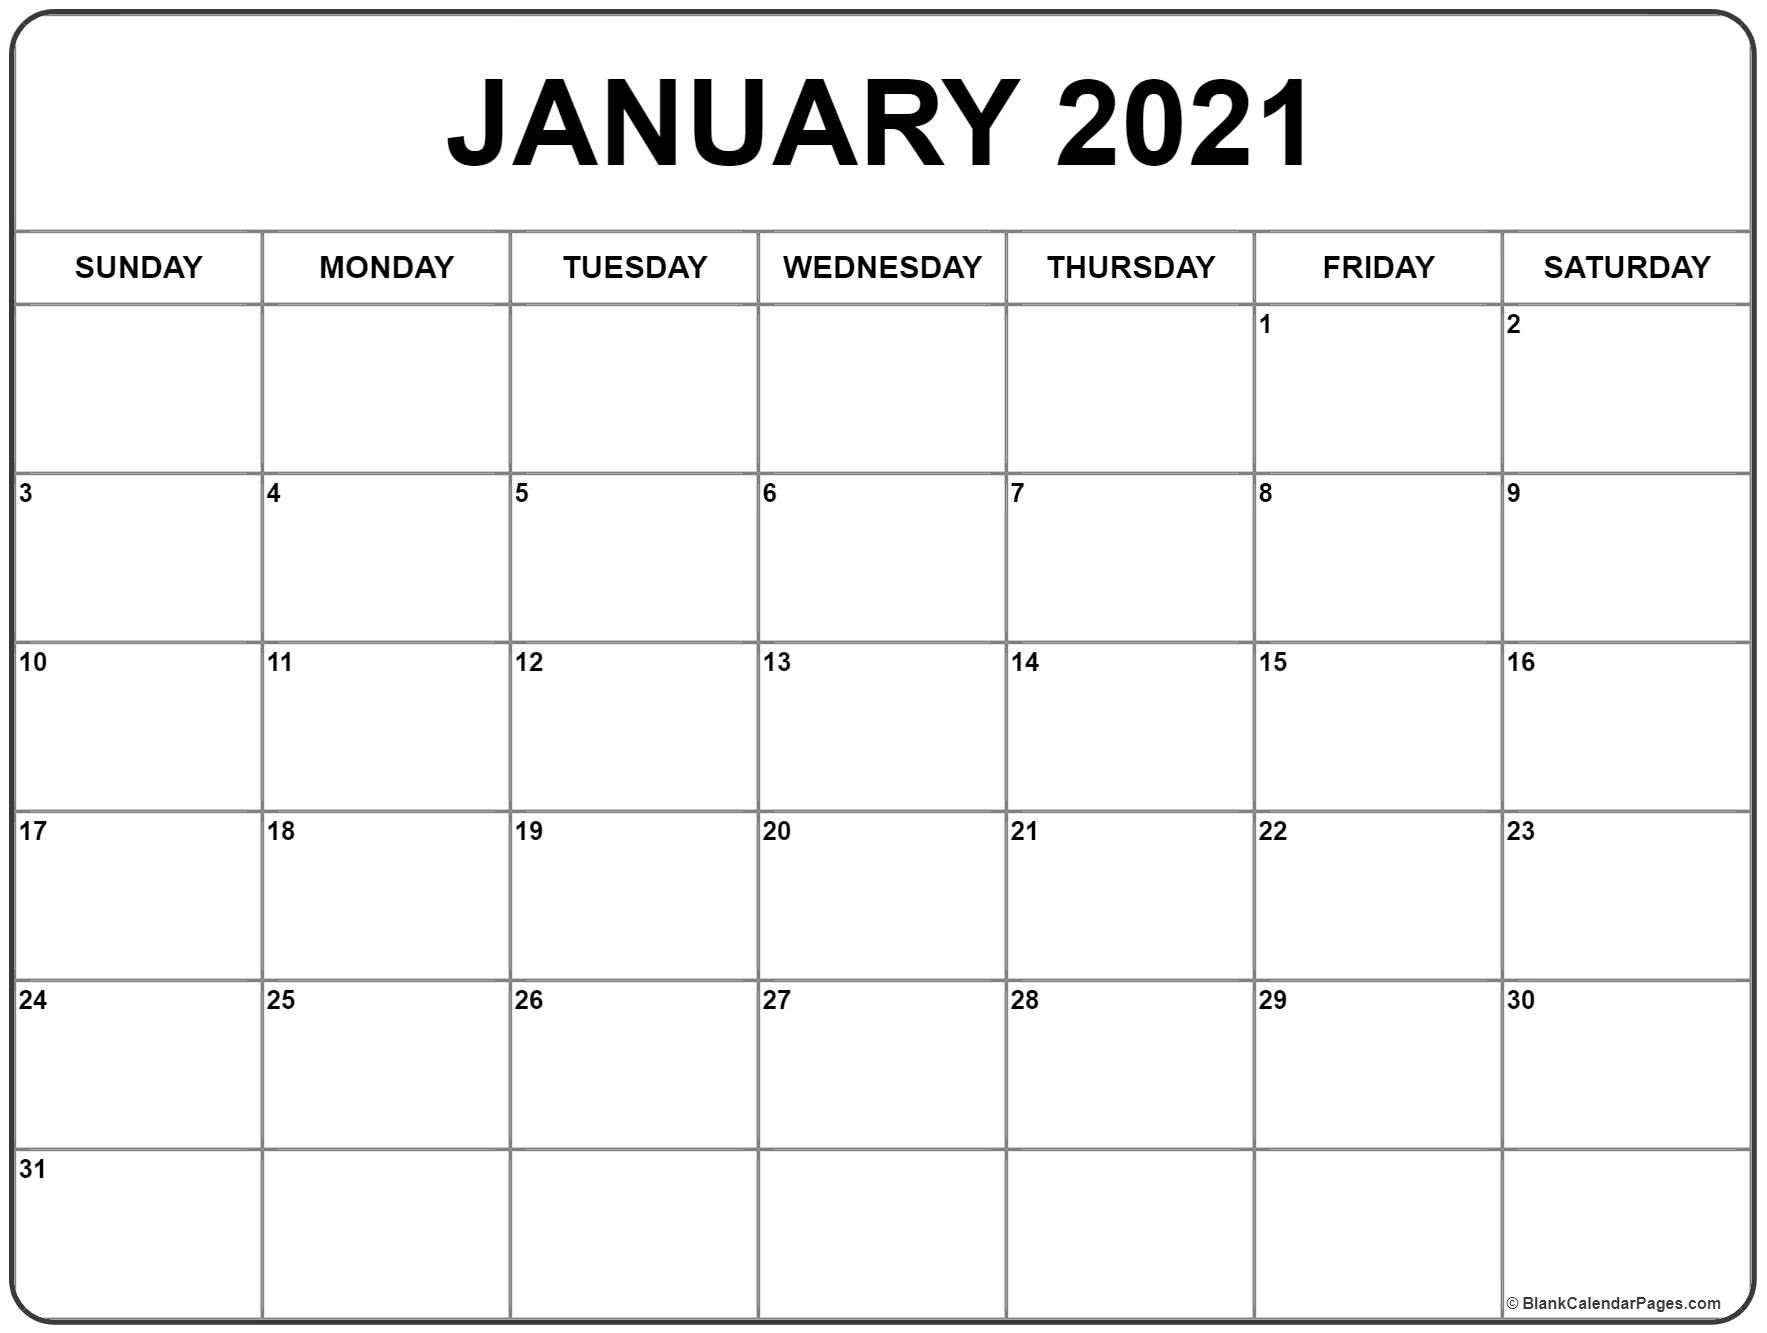 2021 Printable Calendar January In 2020 | Monthly Calendar